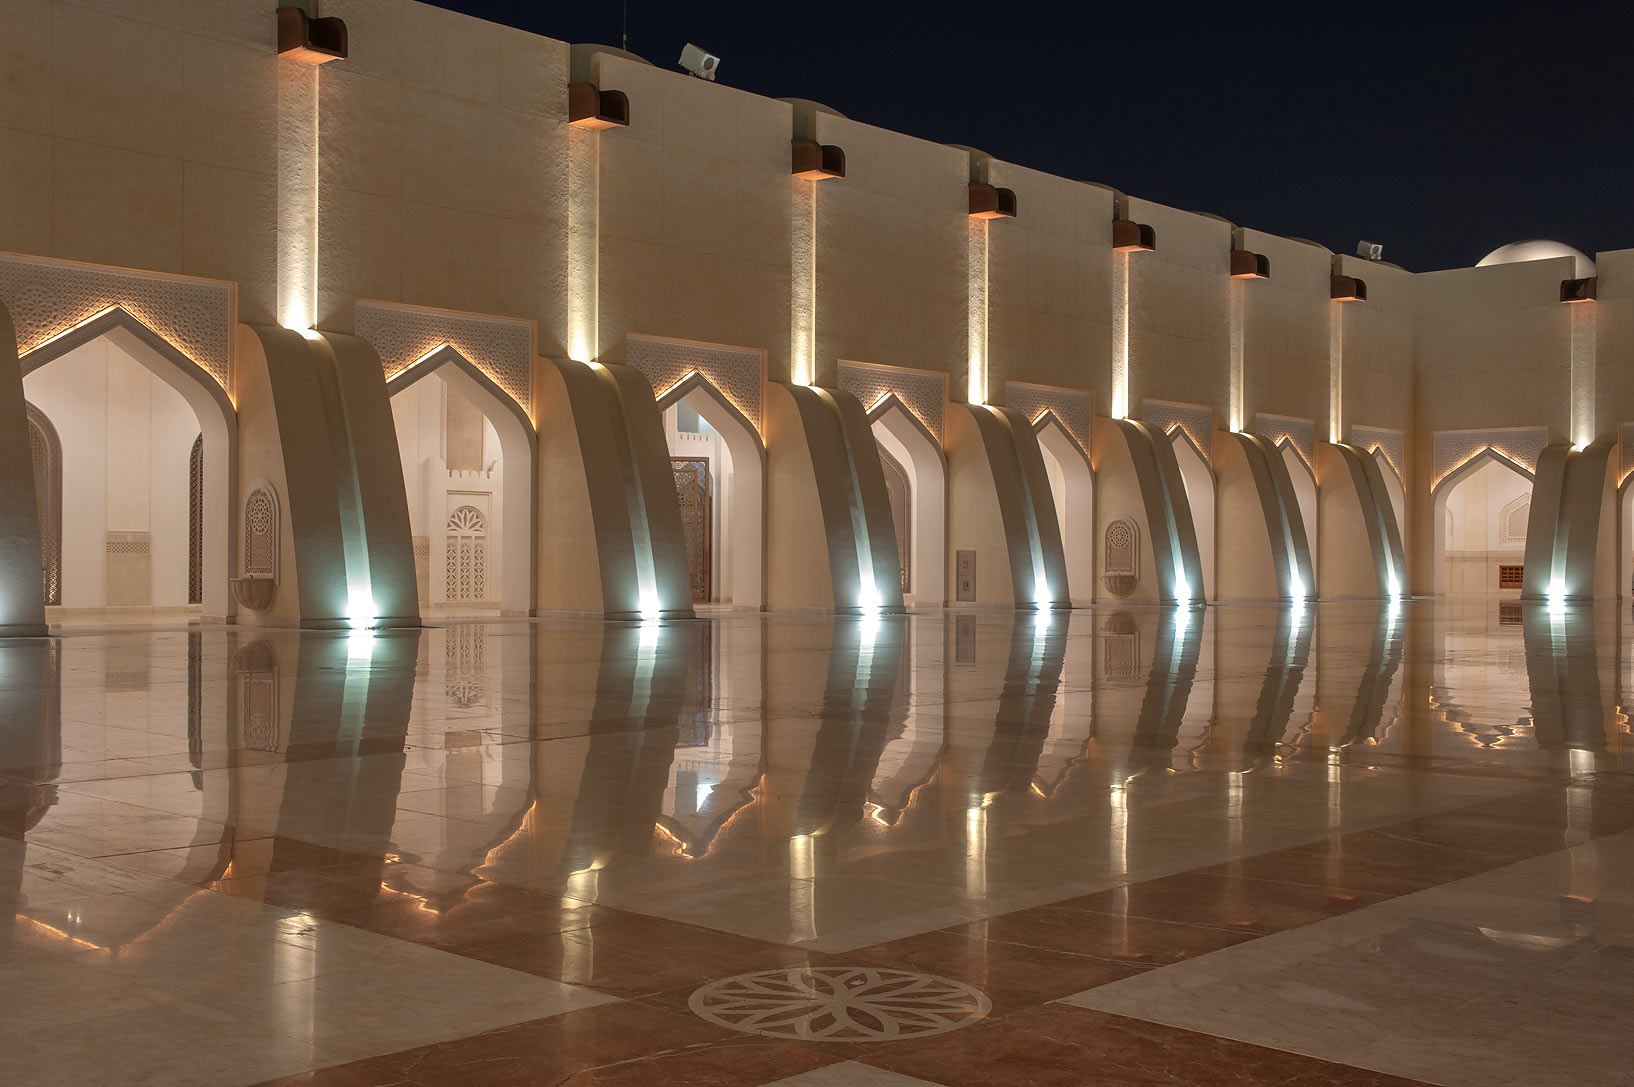 Stone courtyard of State Mosque (Sheikh Muhammad Ibn Abdul Wahhab Mosque). Doha, Qatar